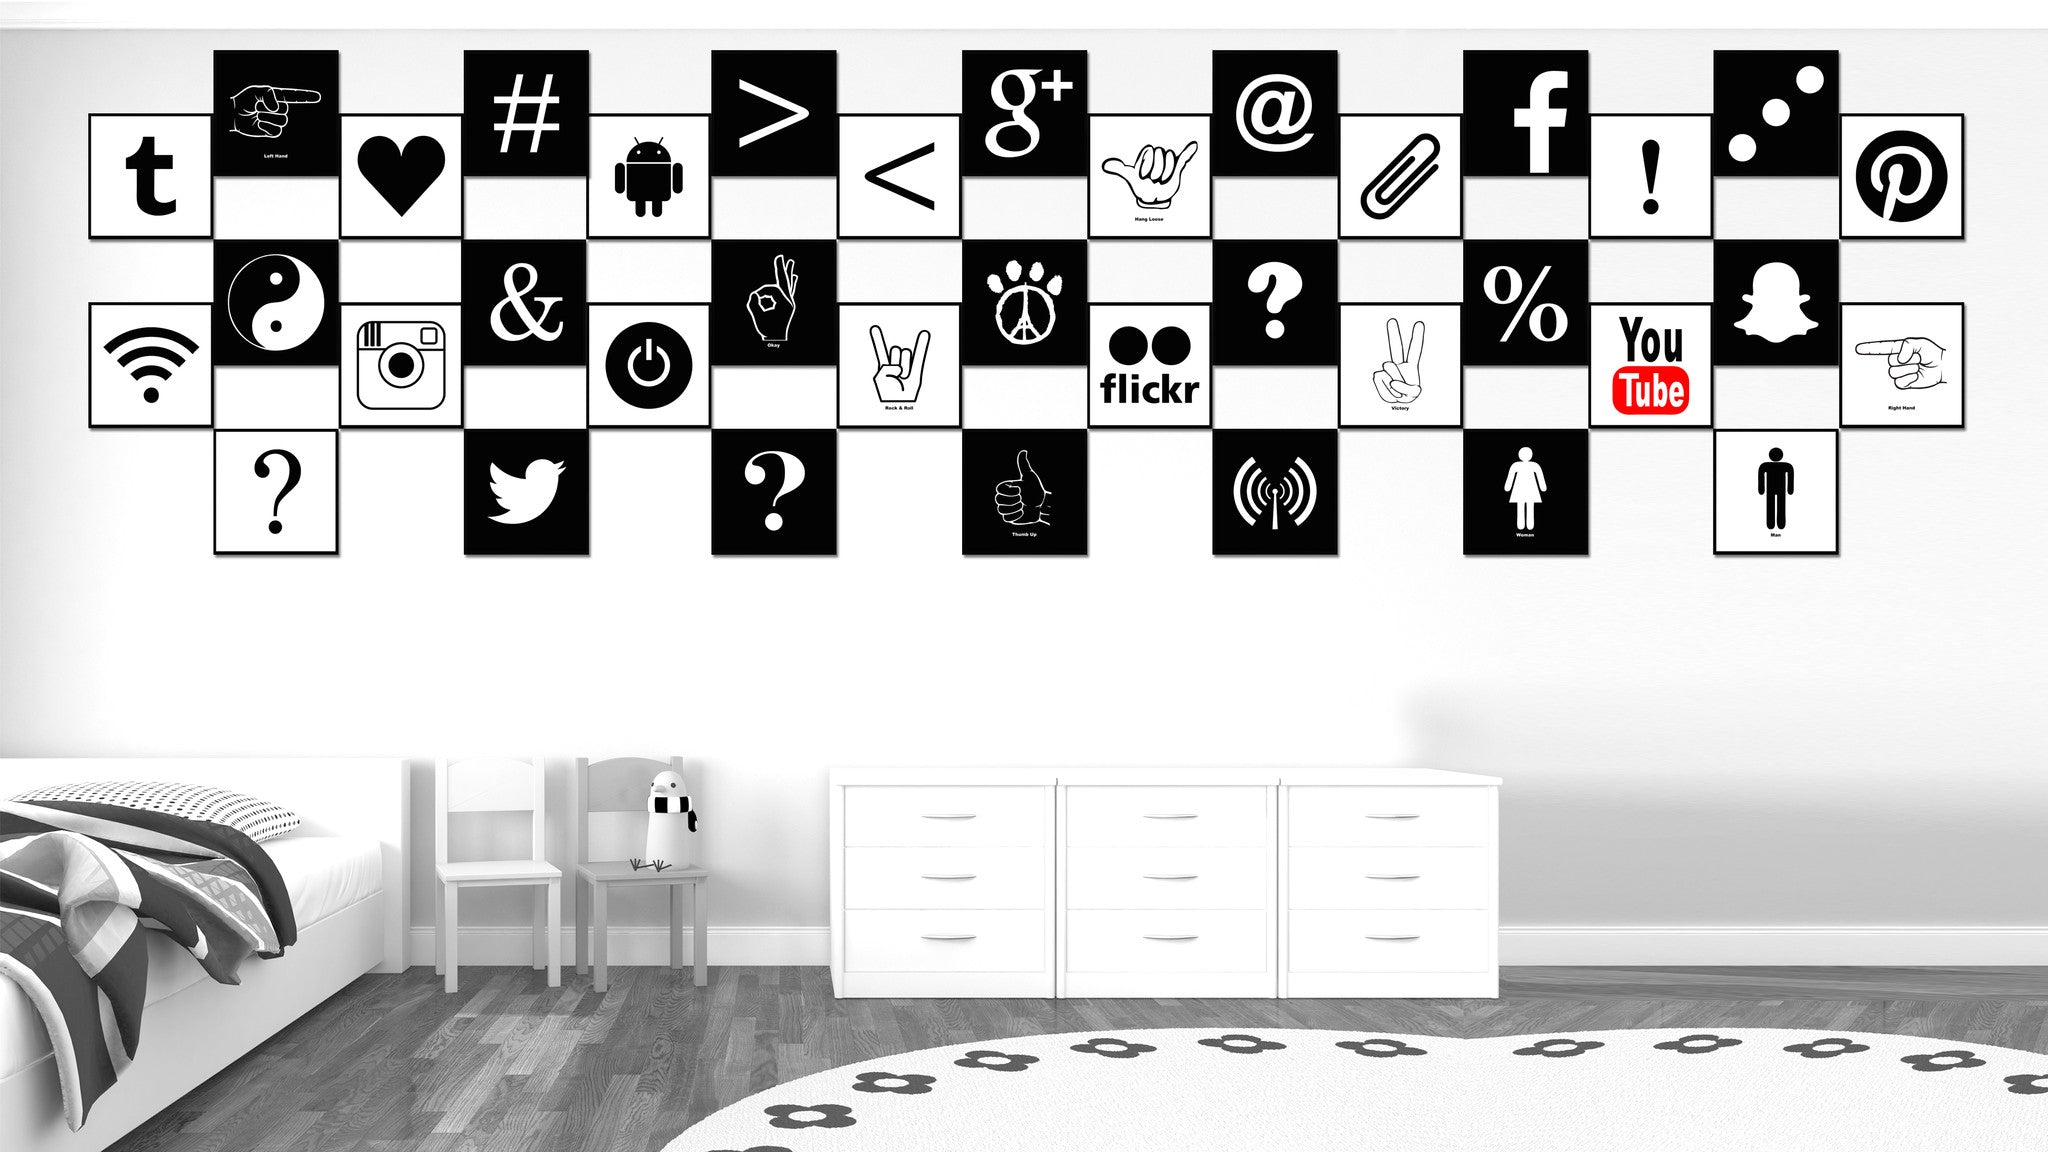 Percent Social Media Icon Canvas Print Picture Frame Wall Art Home Decor